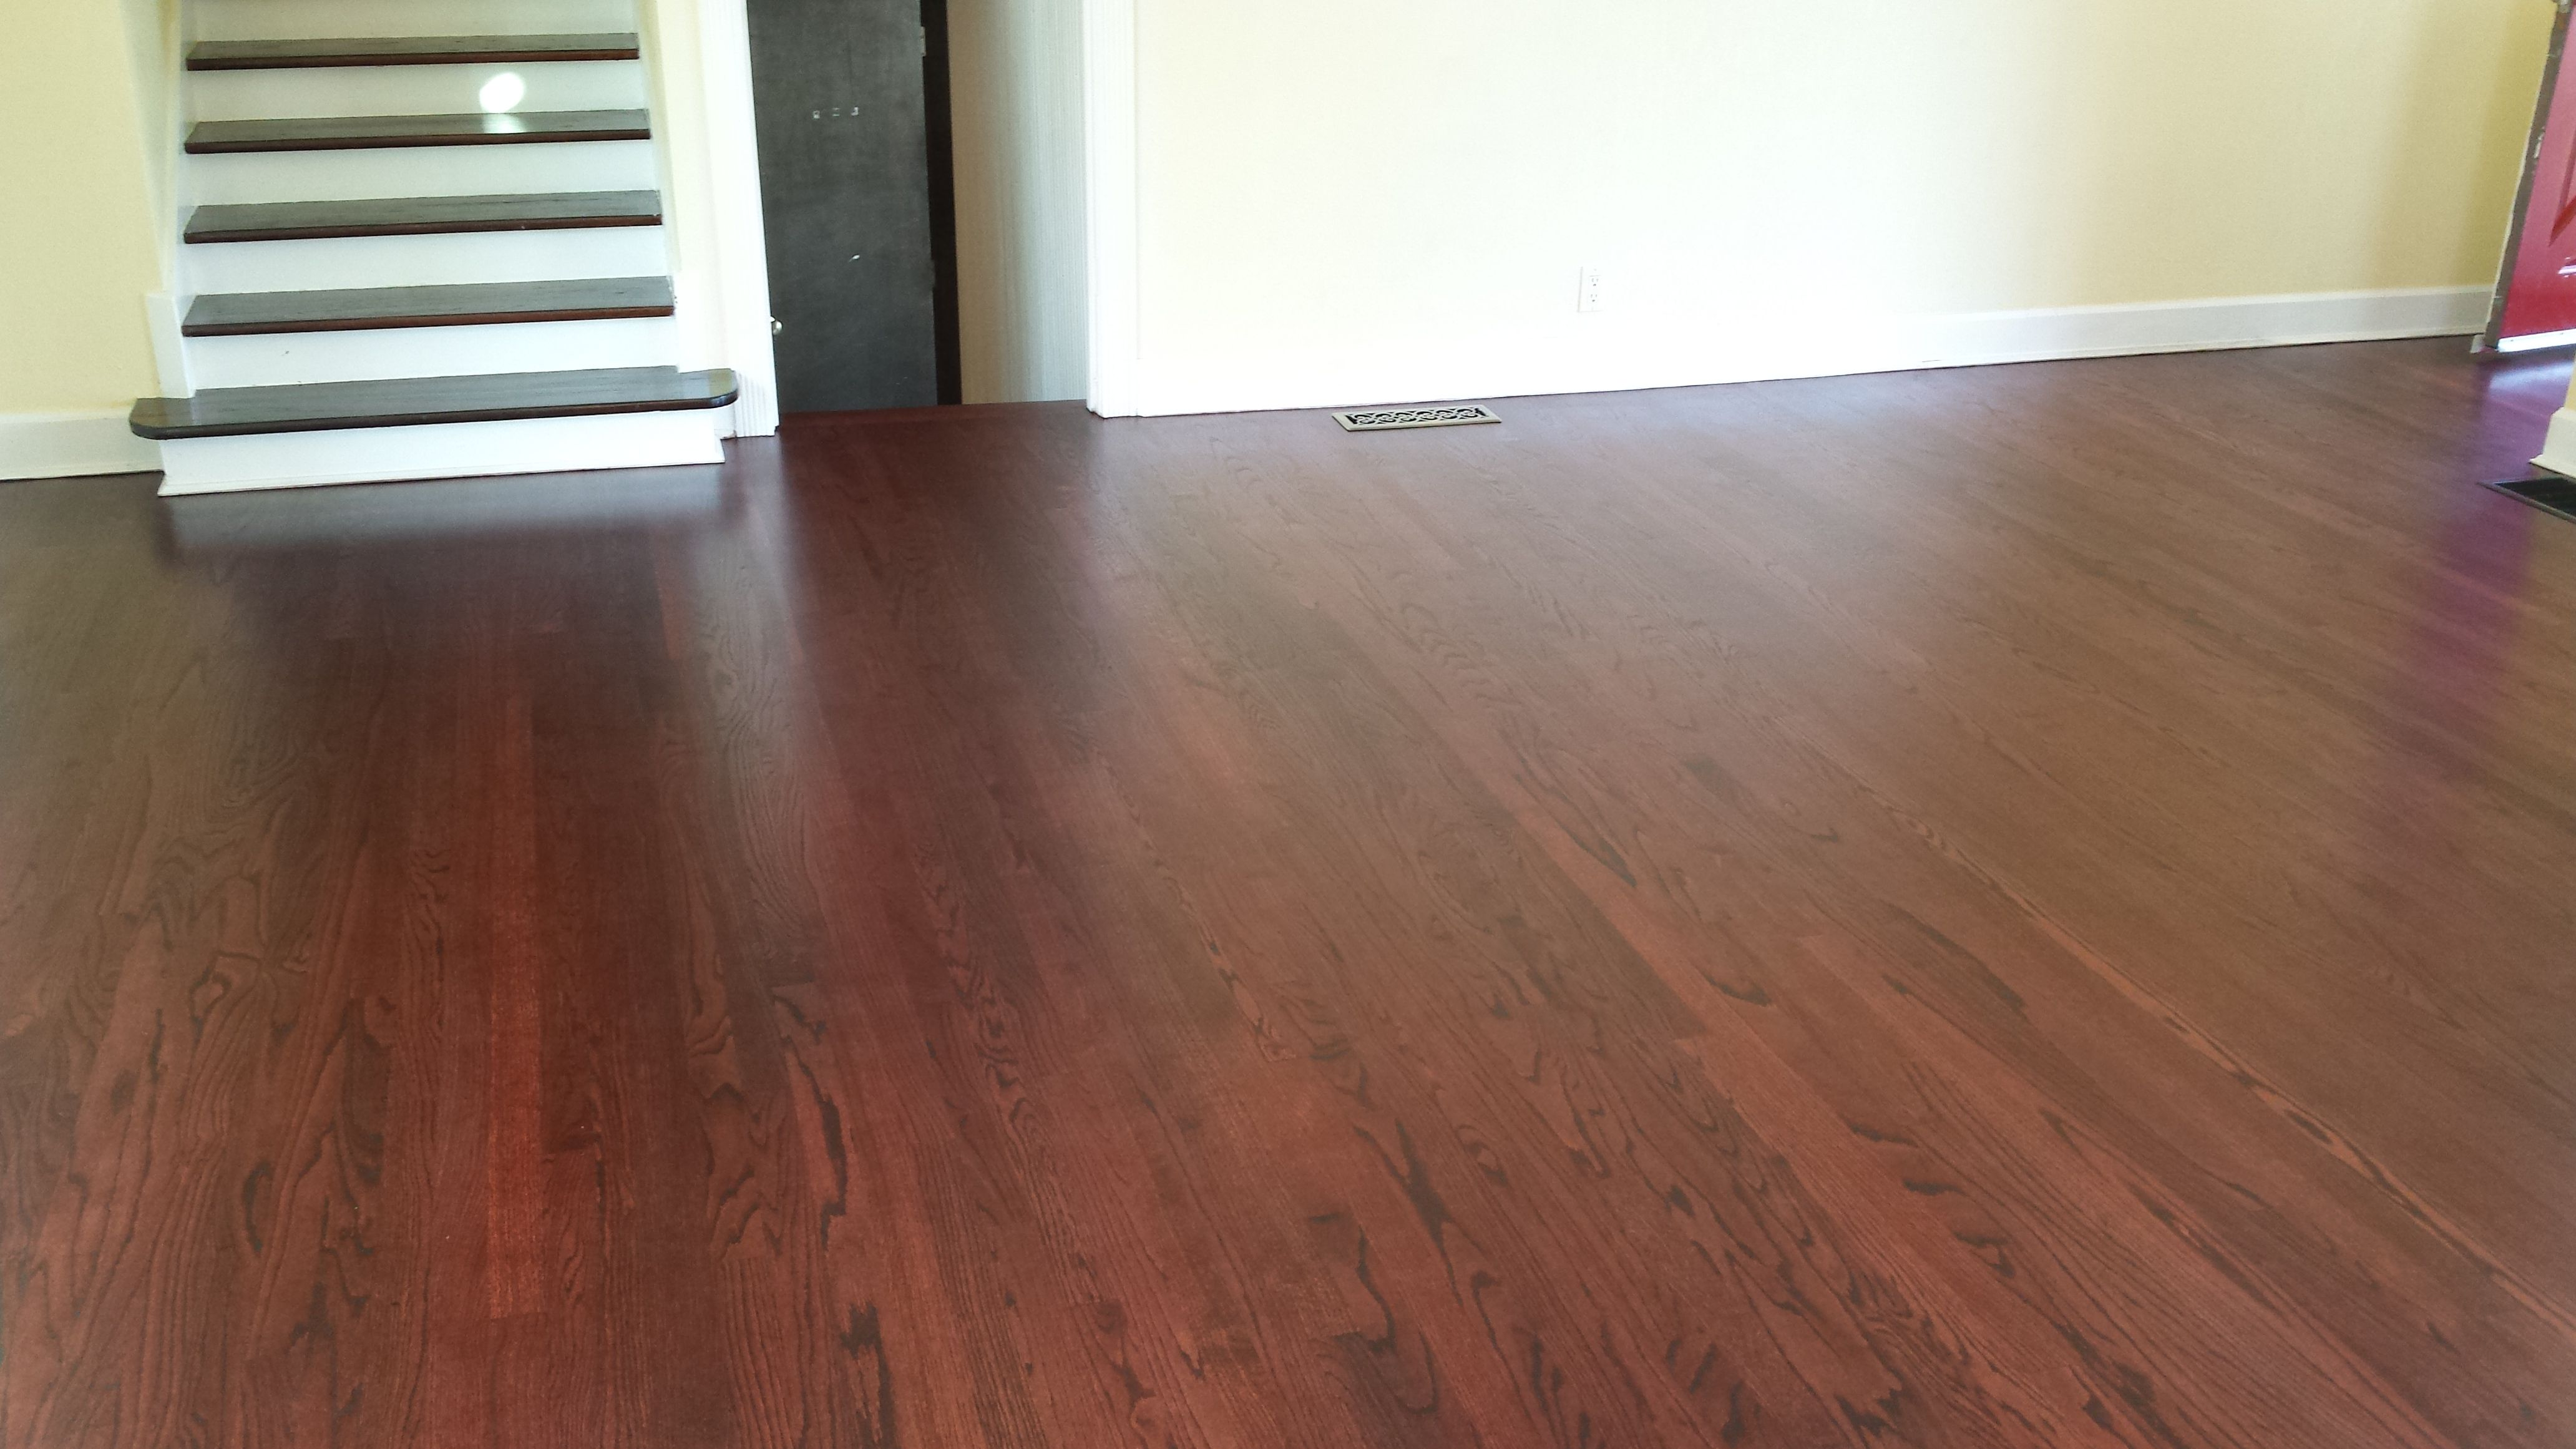 Red Oak Wood Floor Refinished With Duraseal Royal Mahogany Stain Modern Tech Wood Floors Oak Wood Floors Flooring Red Oak Wood